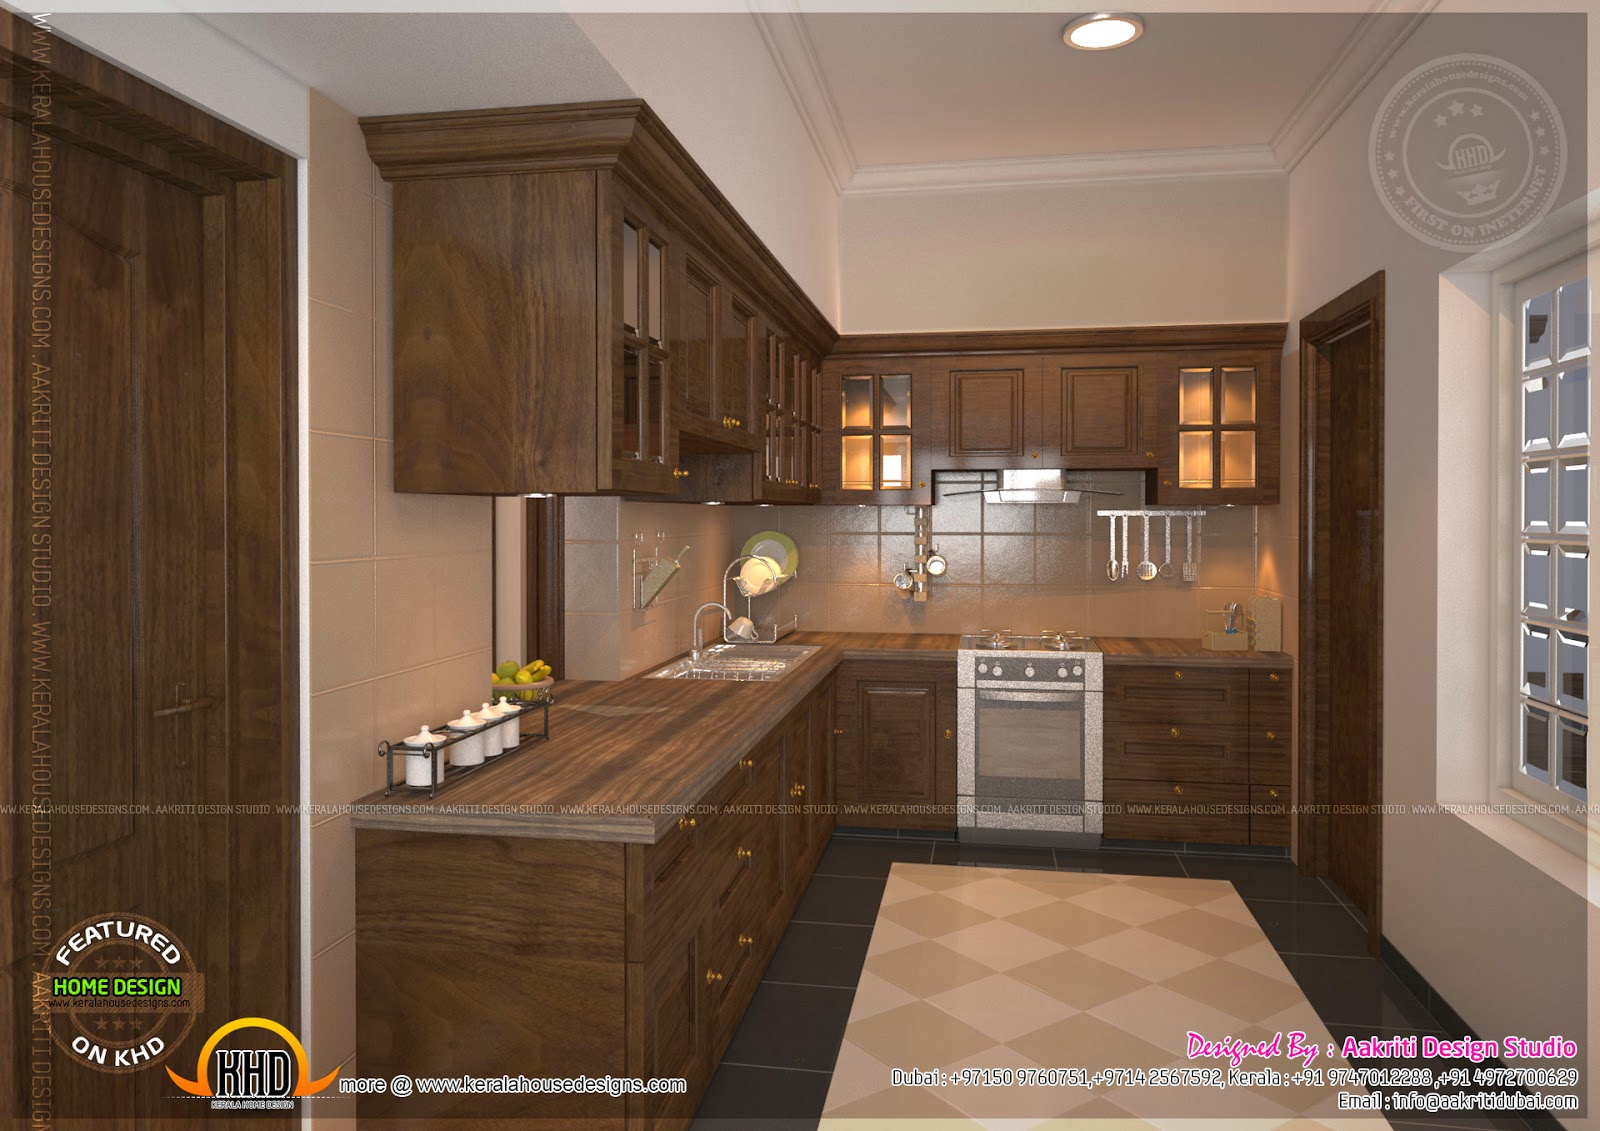 Kitchen Design In Kerala kitchen designsaakriti design studio | kerala home design